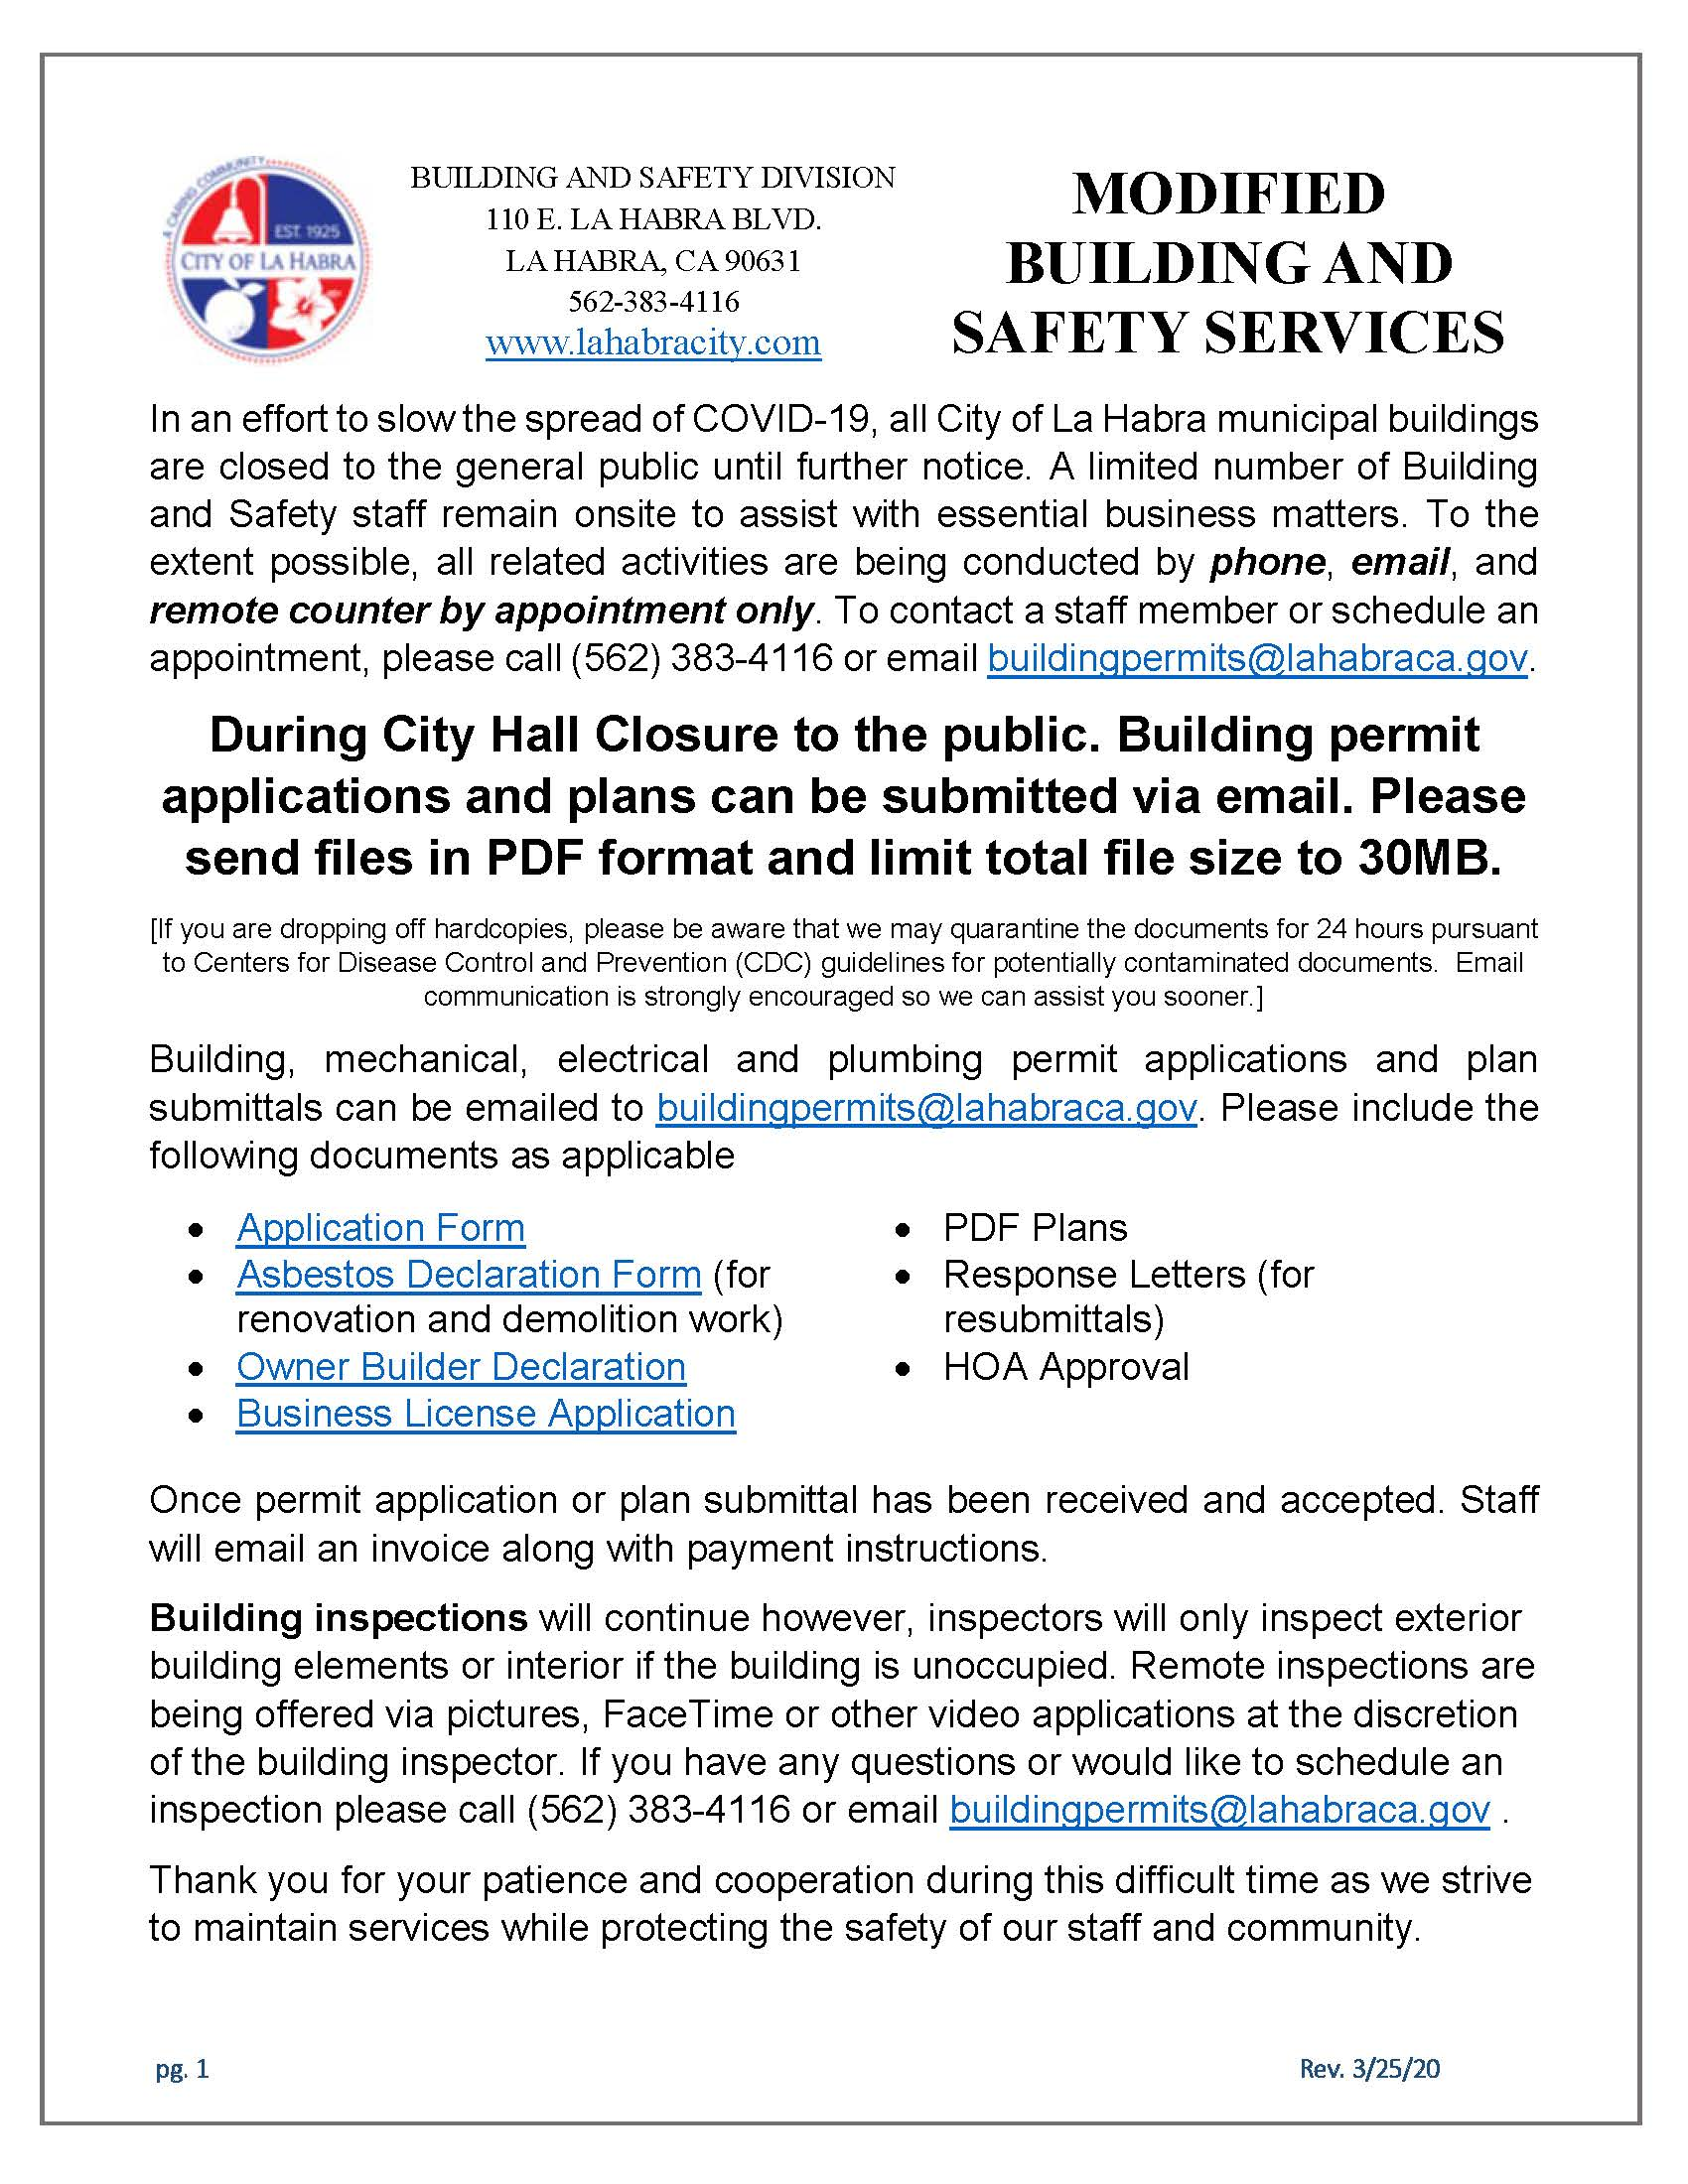 Modified Building and Safety Services PDF